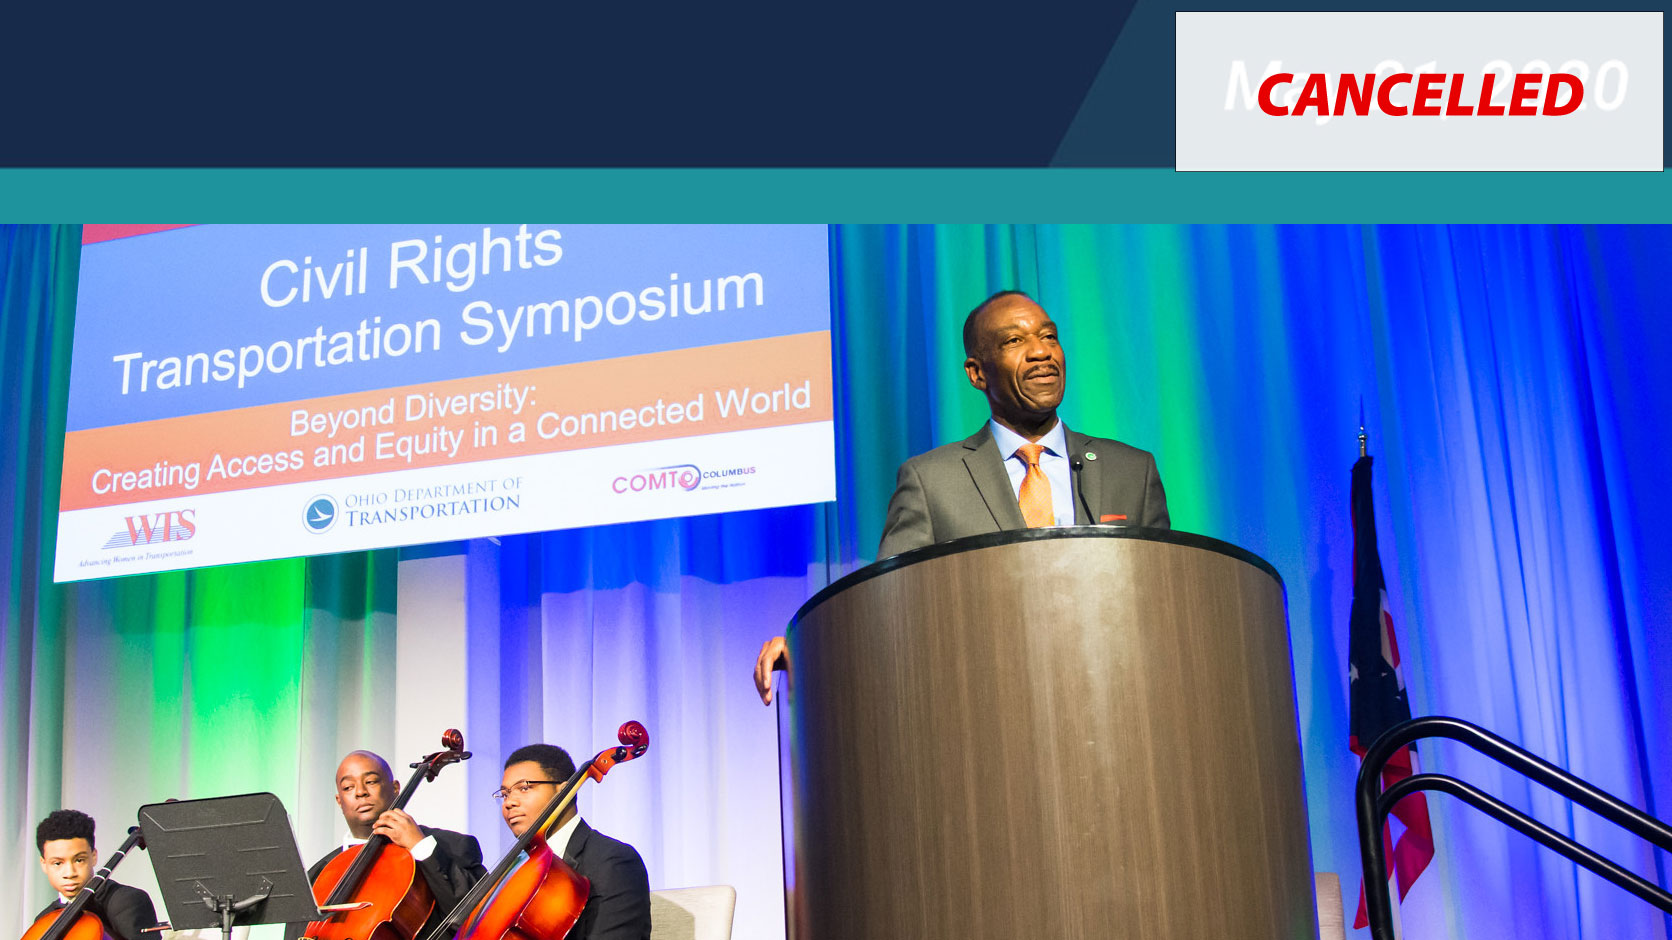 Ohio's Civil Rights Transportation Symposium - CANCELLED!